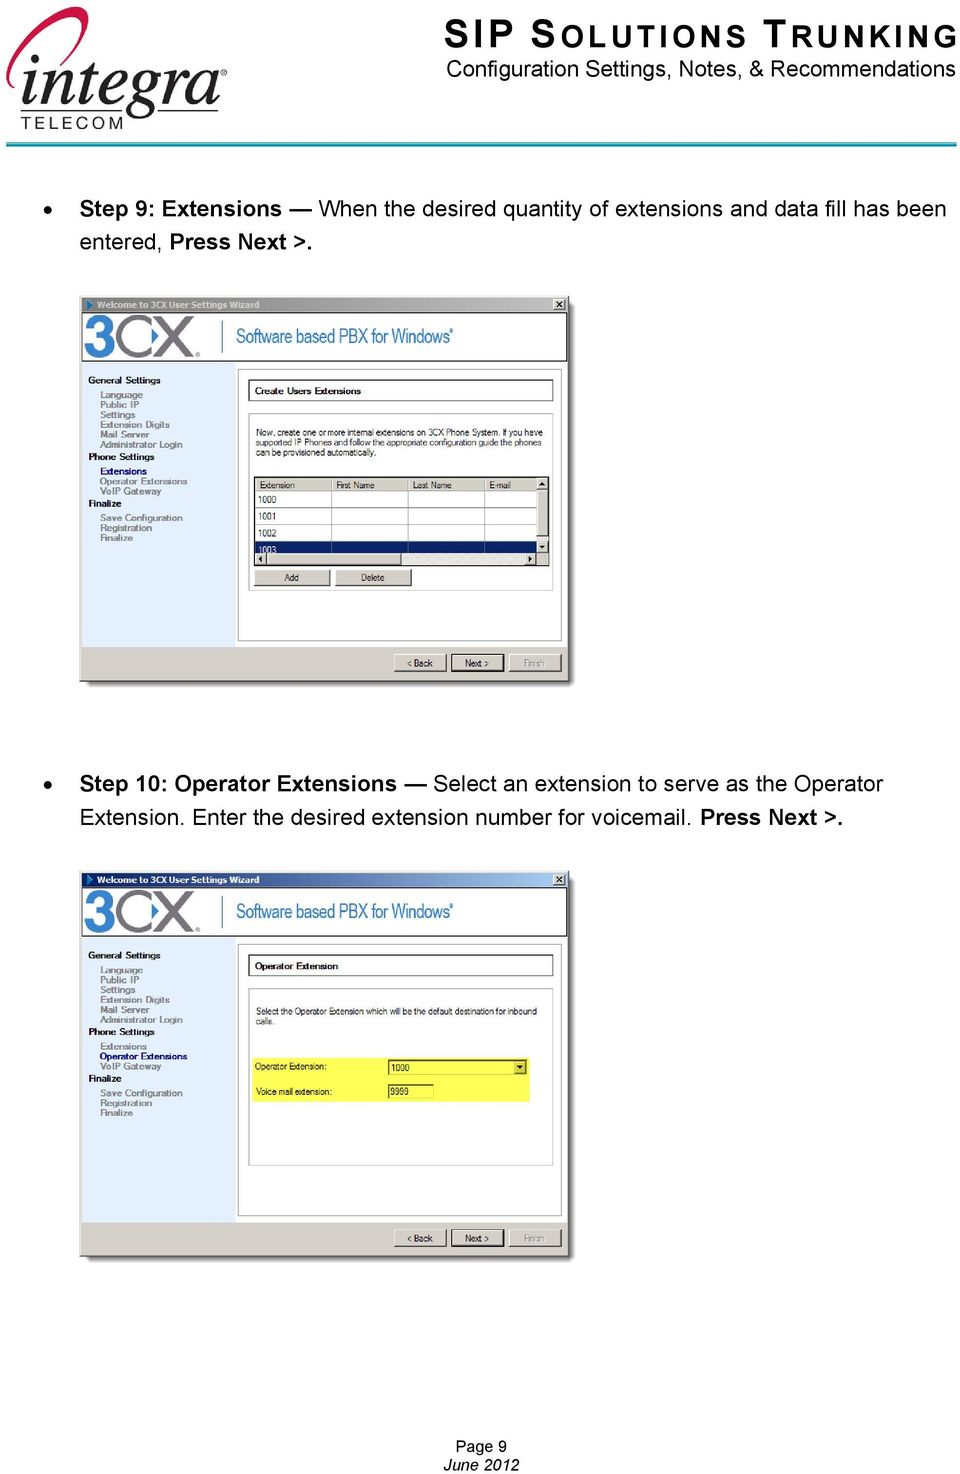 Step 10: Operator Extensions Select an extension to serve as the